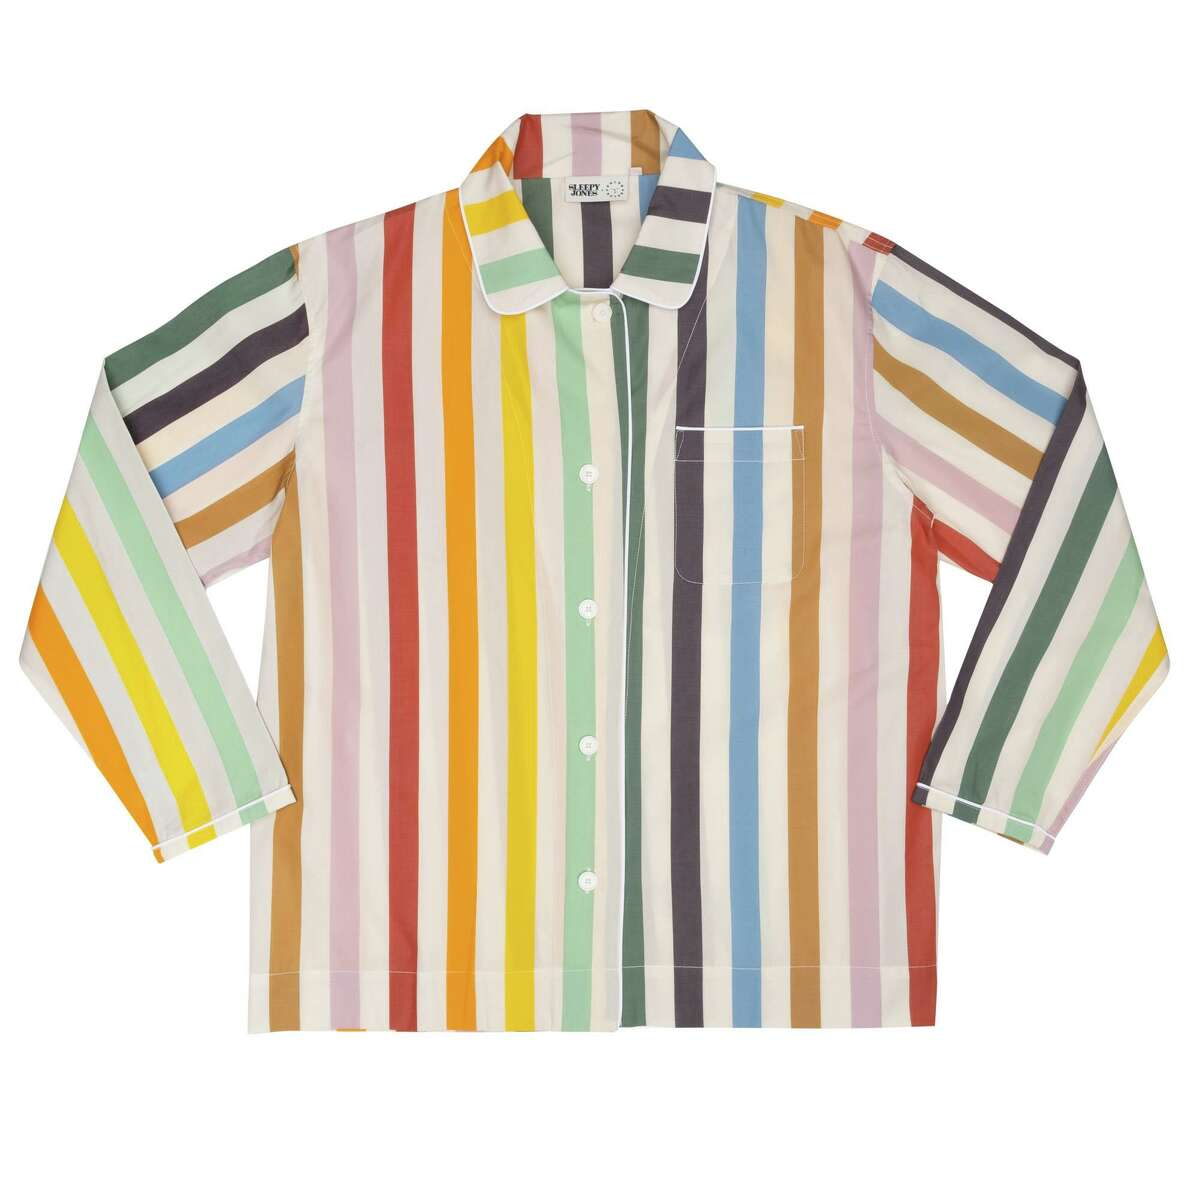 Sleepy Jones X Color Factory pajamas; $178 at Color Factory